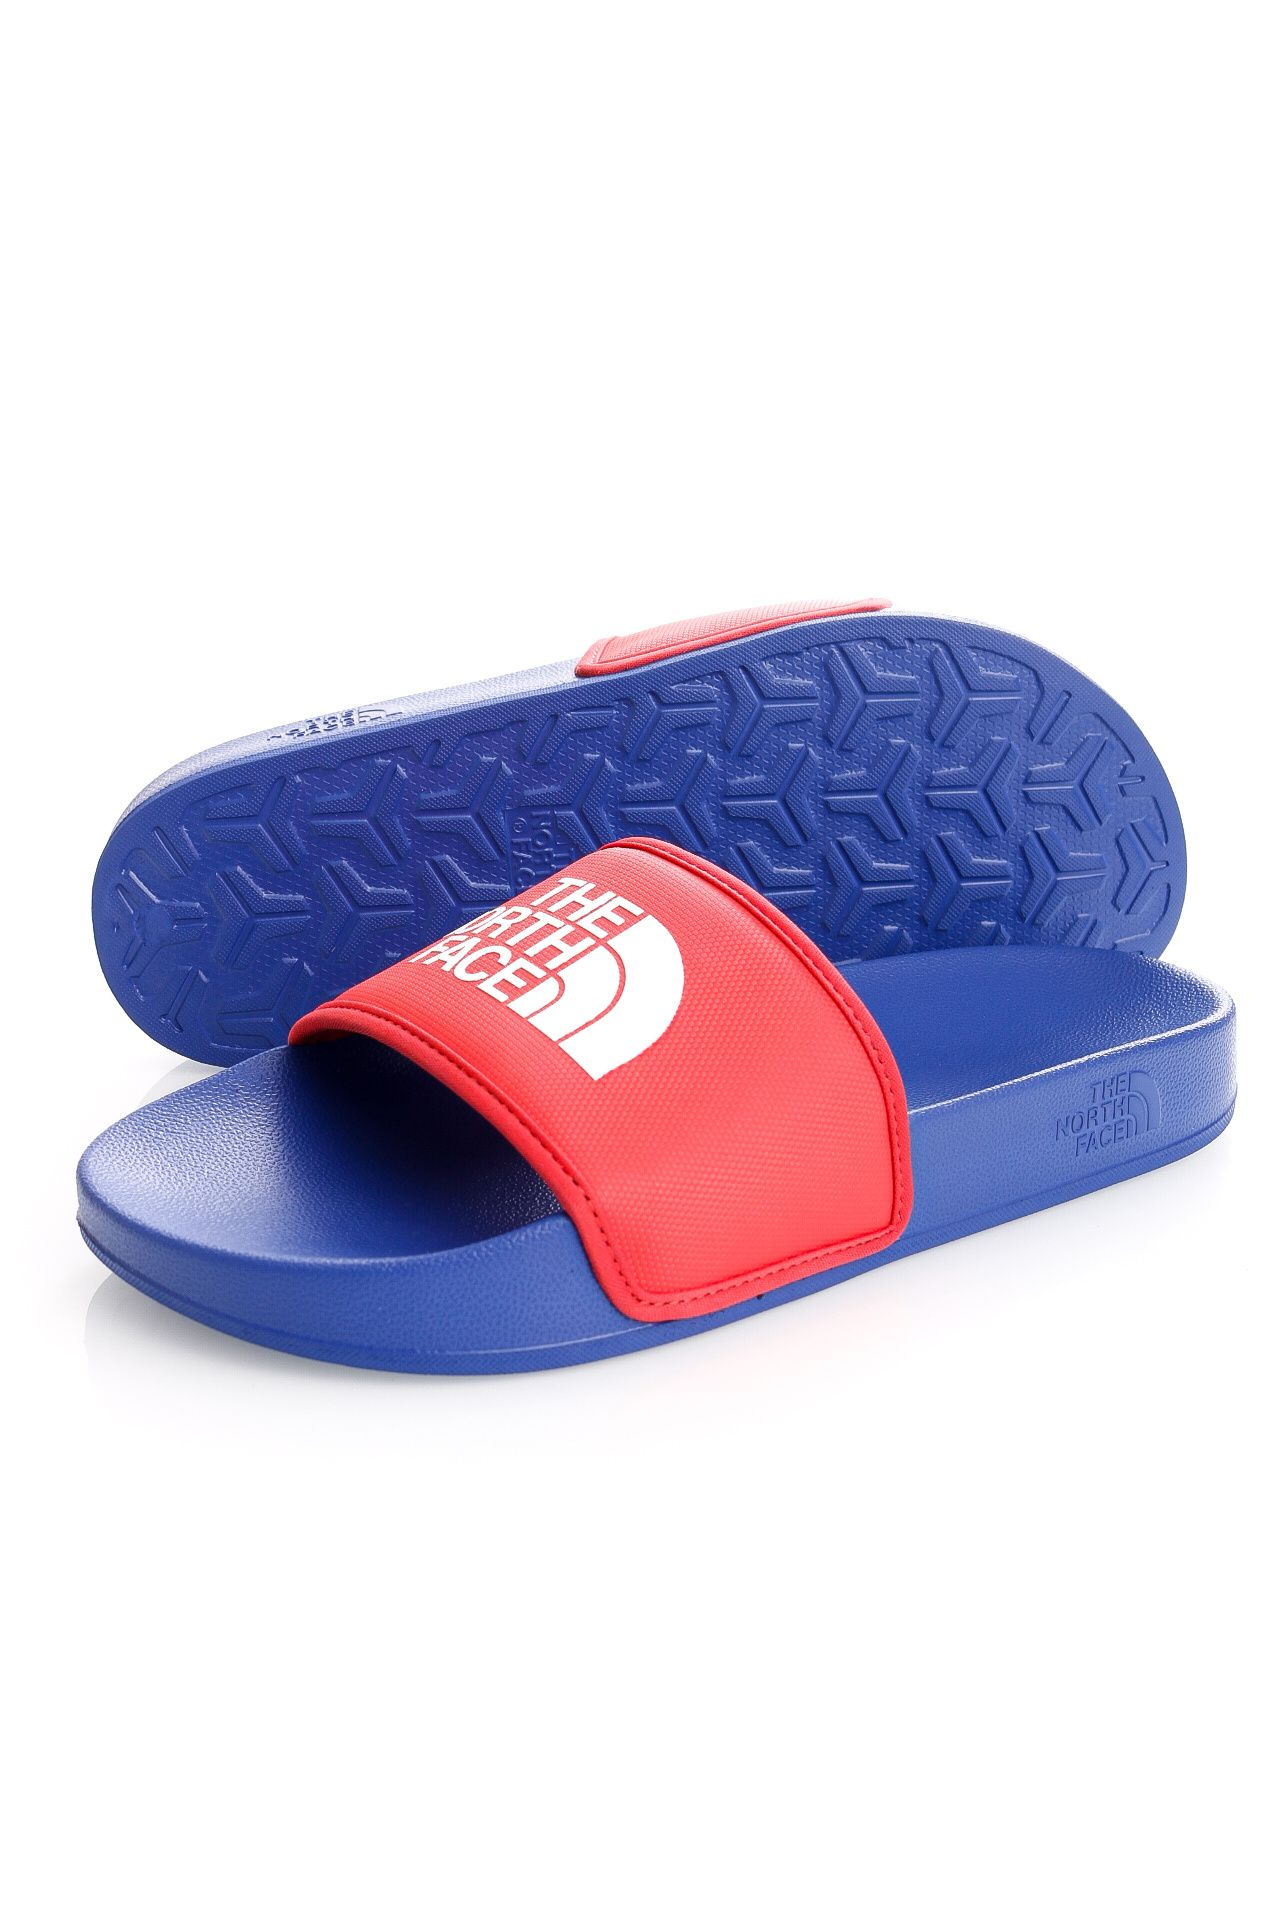 Afbeelding van The North Face Slippers Mens Base Camp Slide III TNF Blue/Horizon Red NF0A4T2RZ451